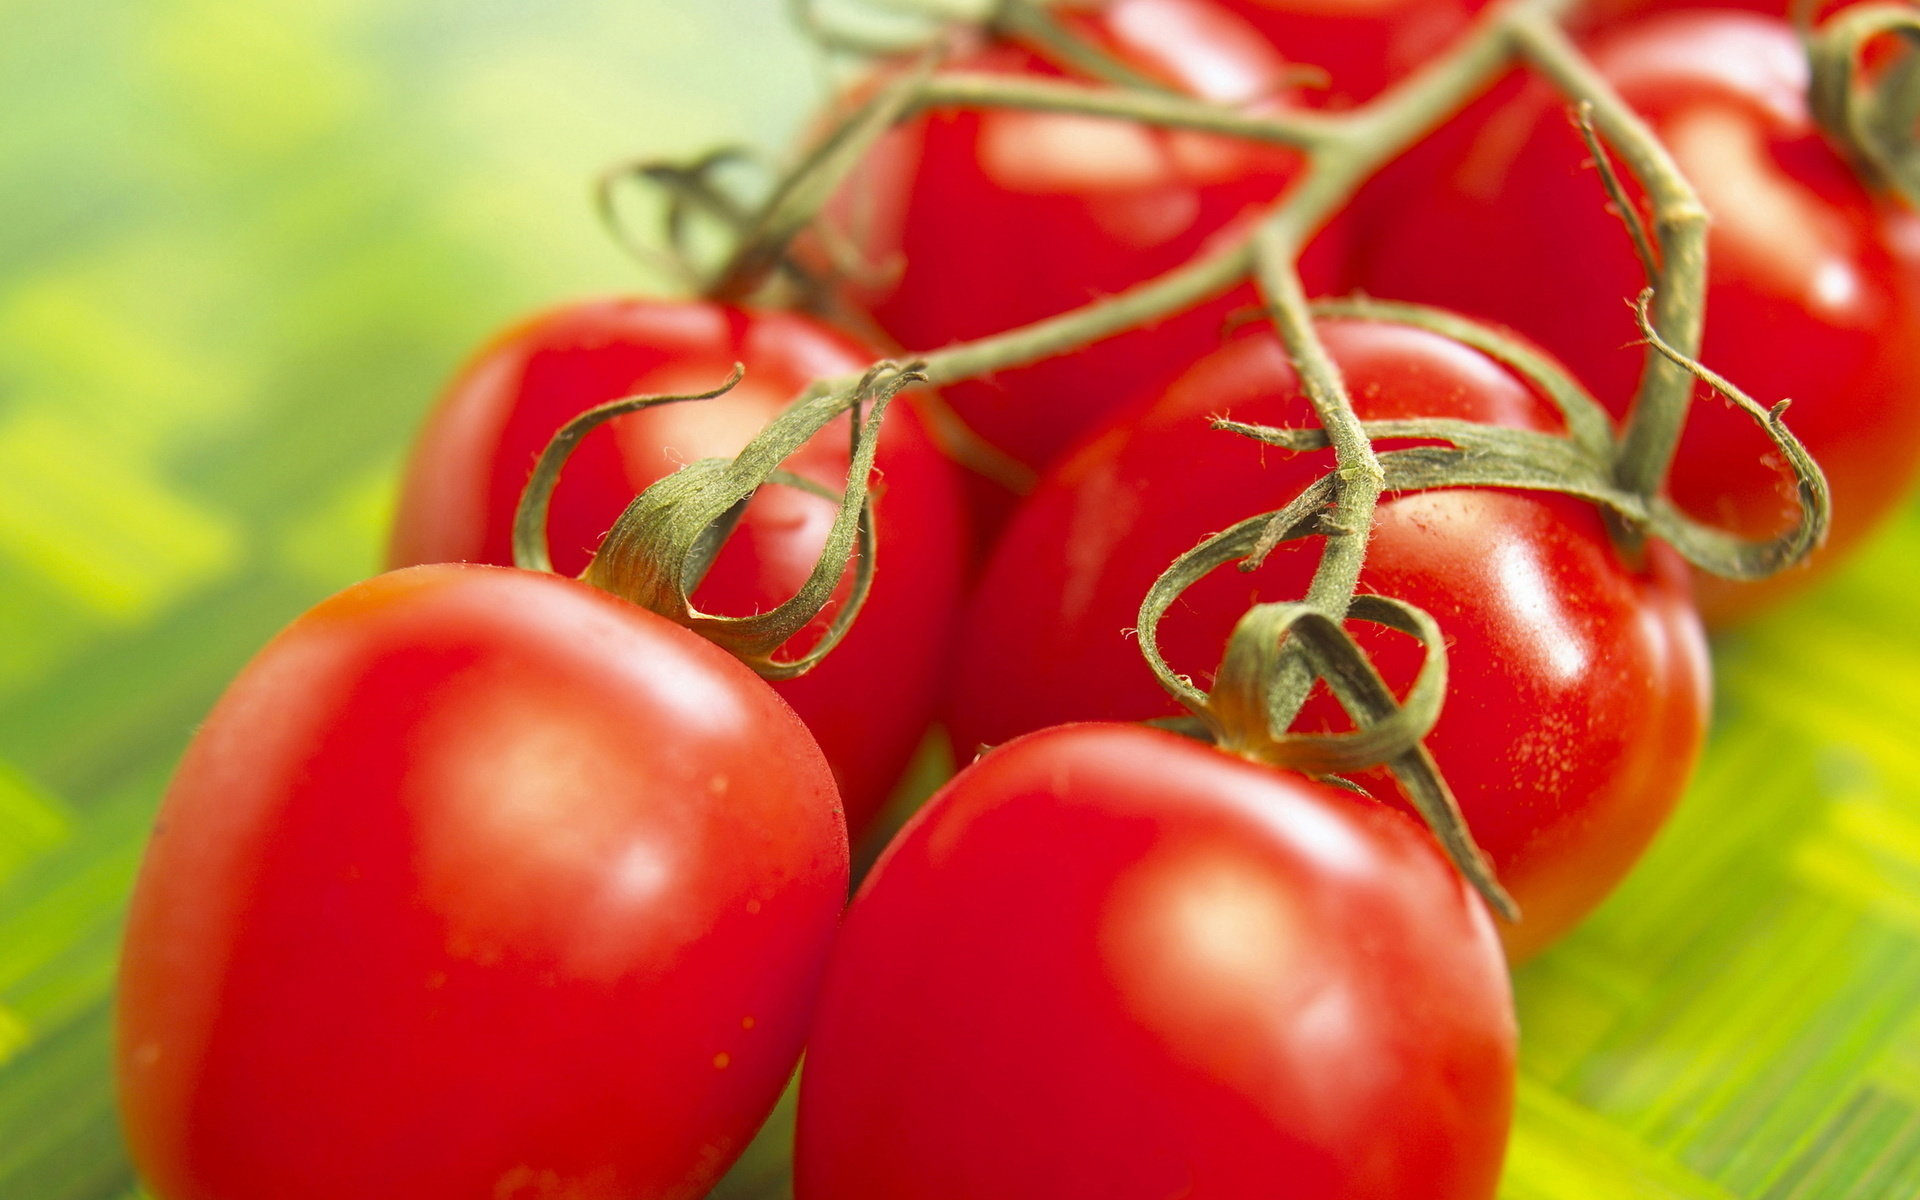 Free Tomato high quality wallpaper ID:95392 for hd 1920x1200 desktop